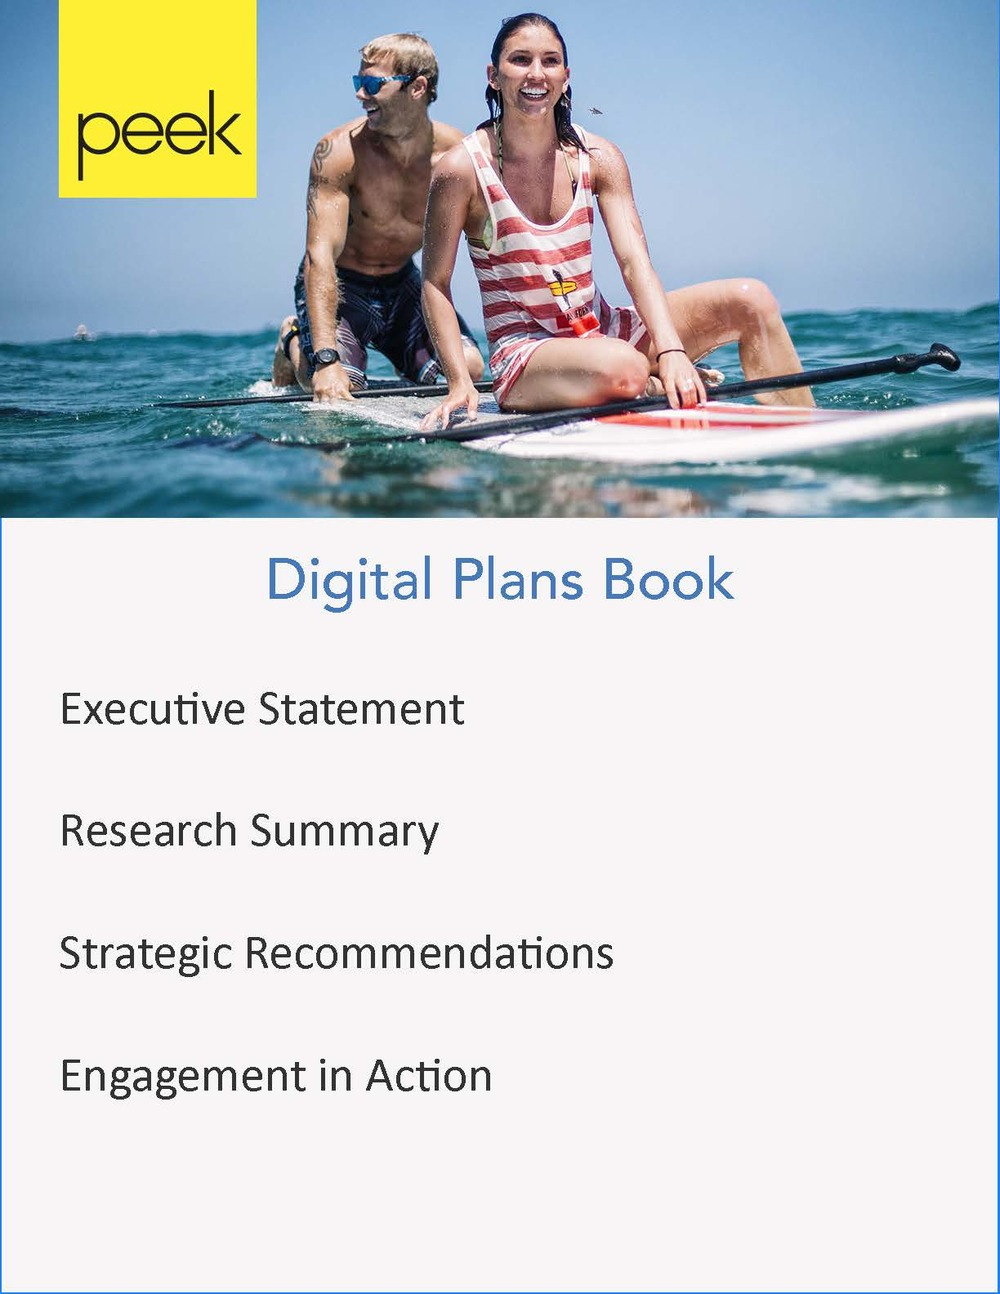 Peek Digital Plans Book Summer 13_Page_02.jpg